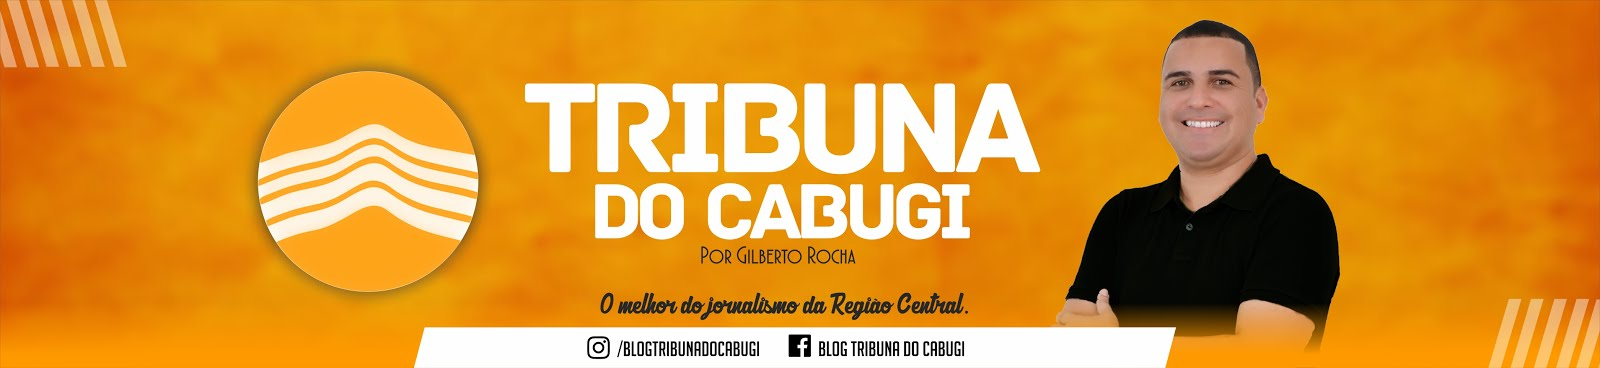 Blog Tribuna do Cabugi